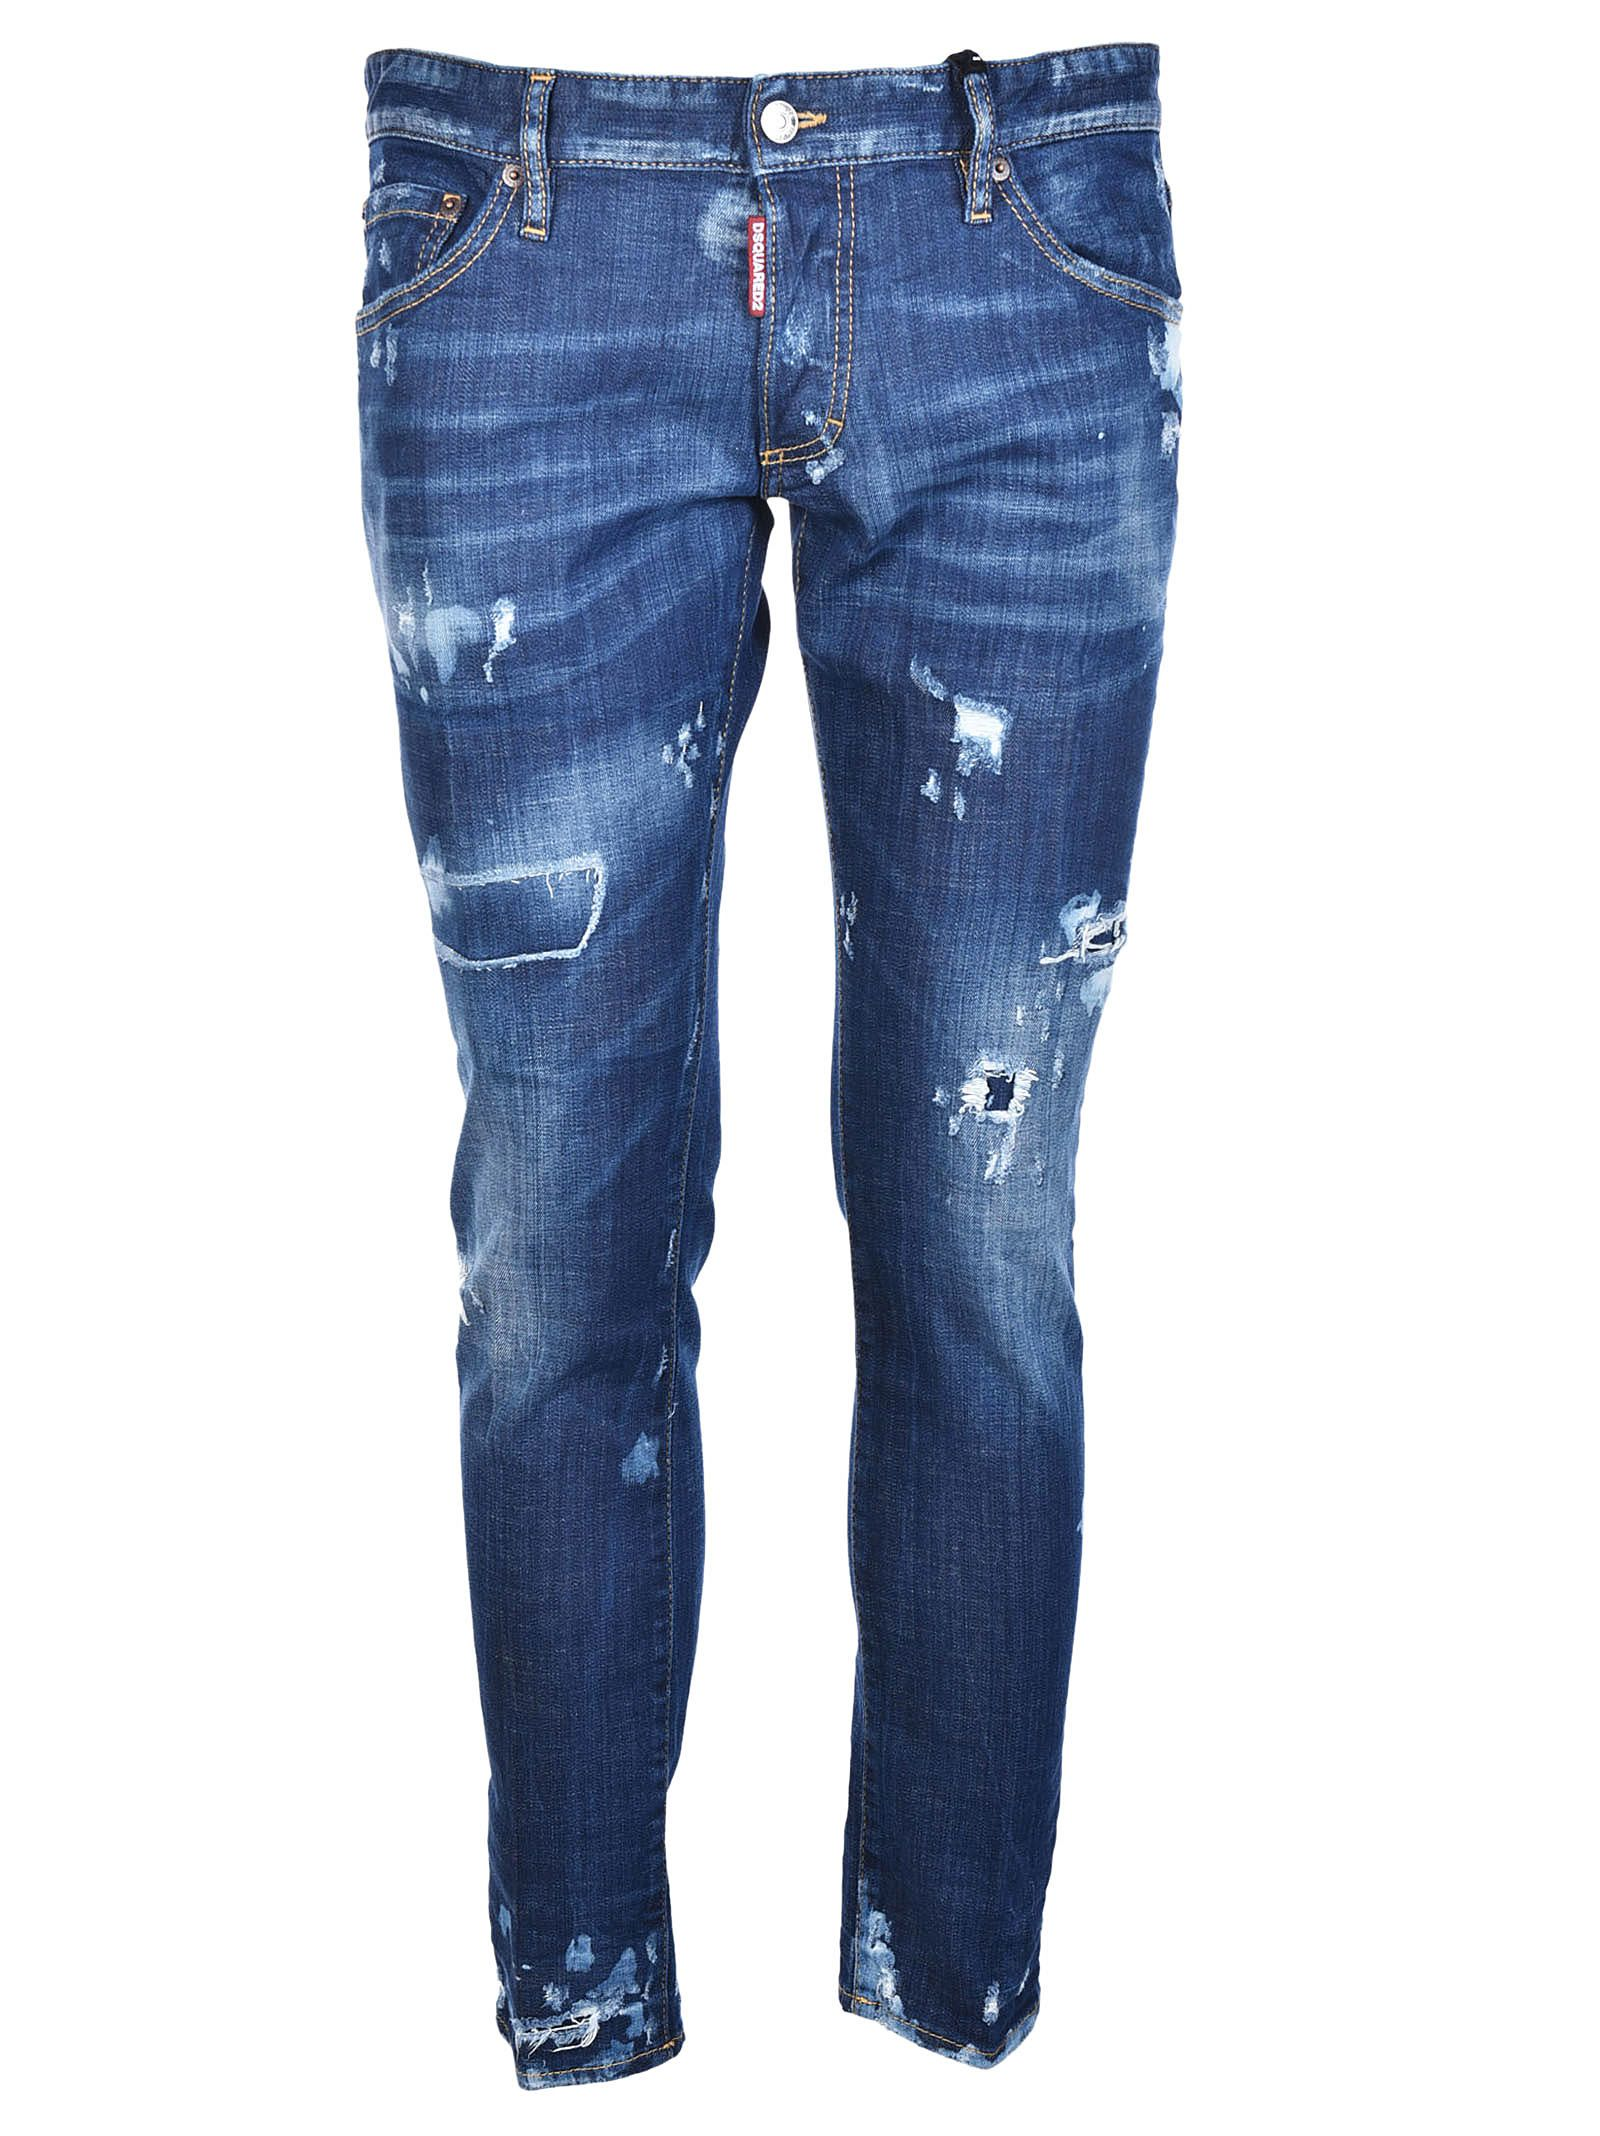 Largest Supplier Cheap Online skater jeans Dsquared2 Free Shipping Websites Sale Get Authentic Cheap Price In China Super k98Dd